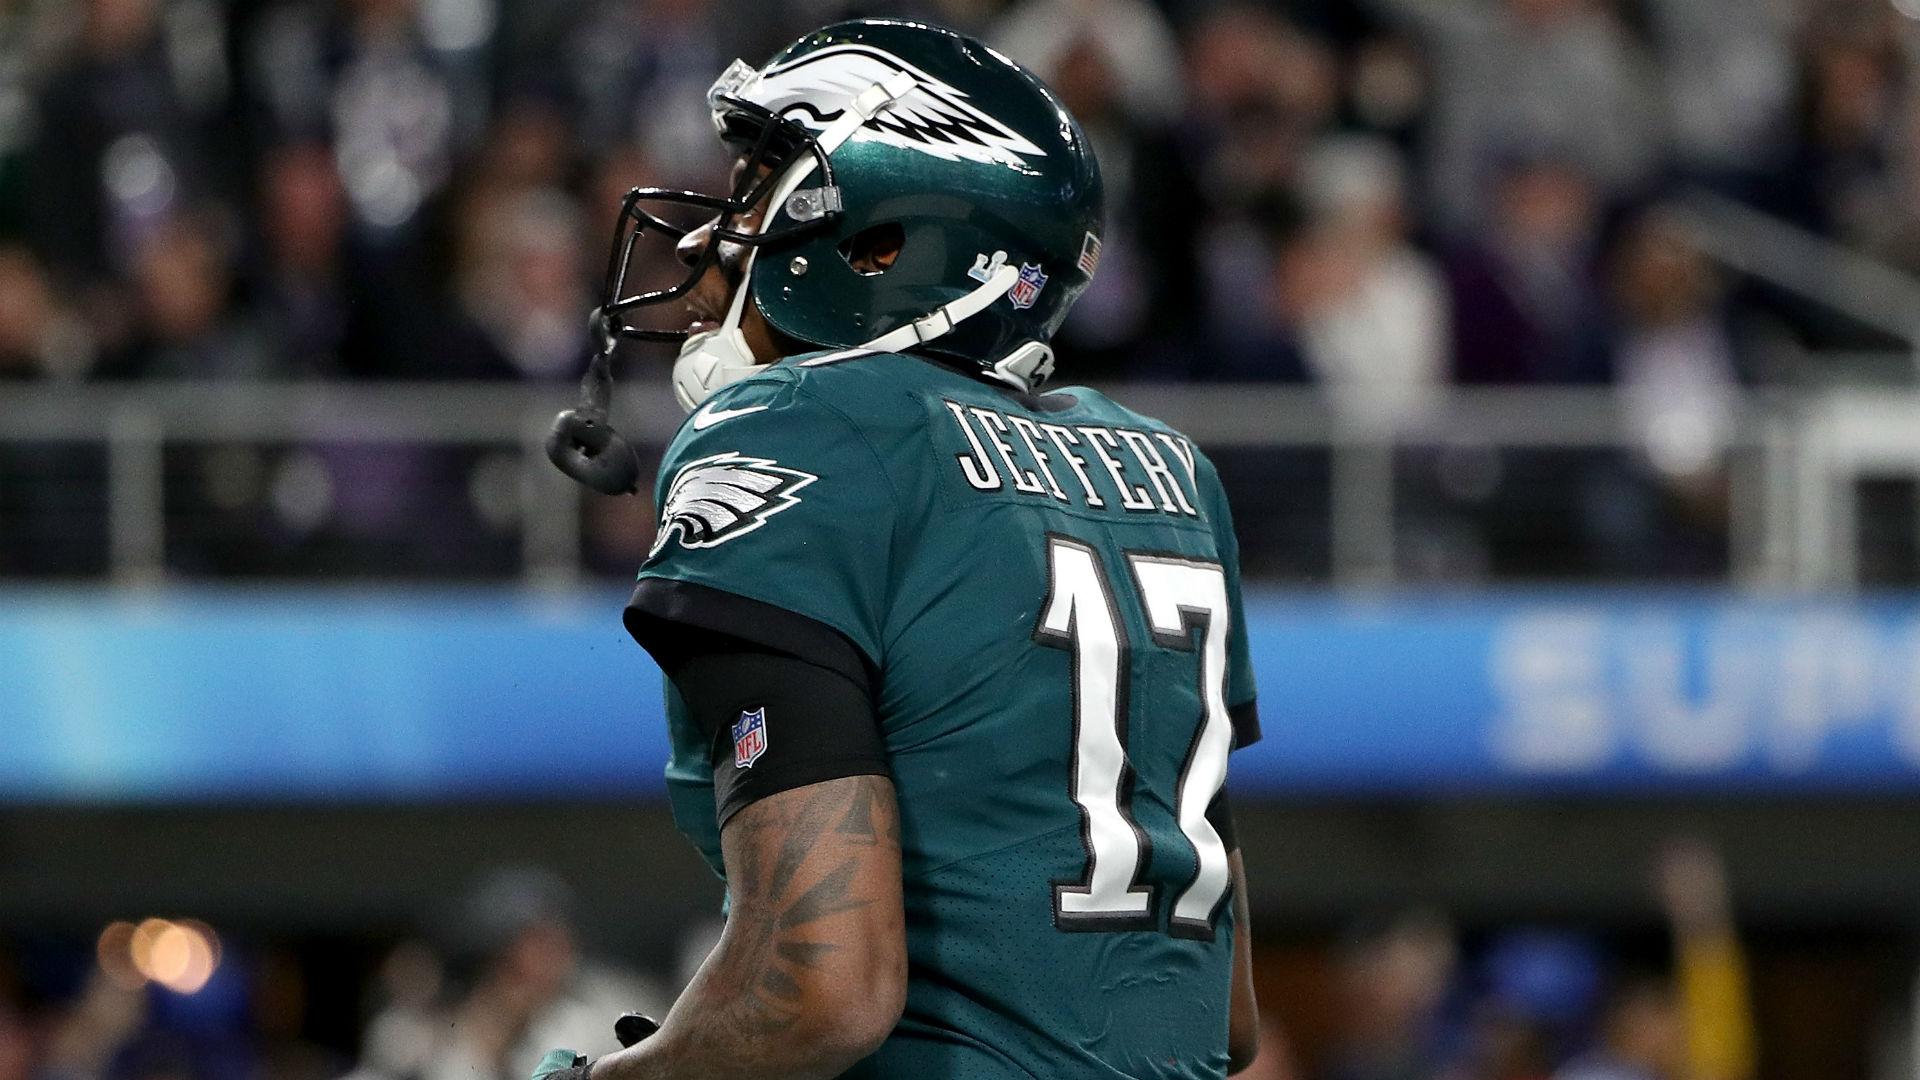 Alshon Jeffery has surgery for shoulder injury he played through all season